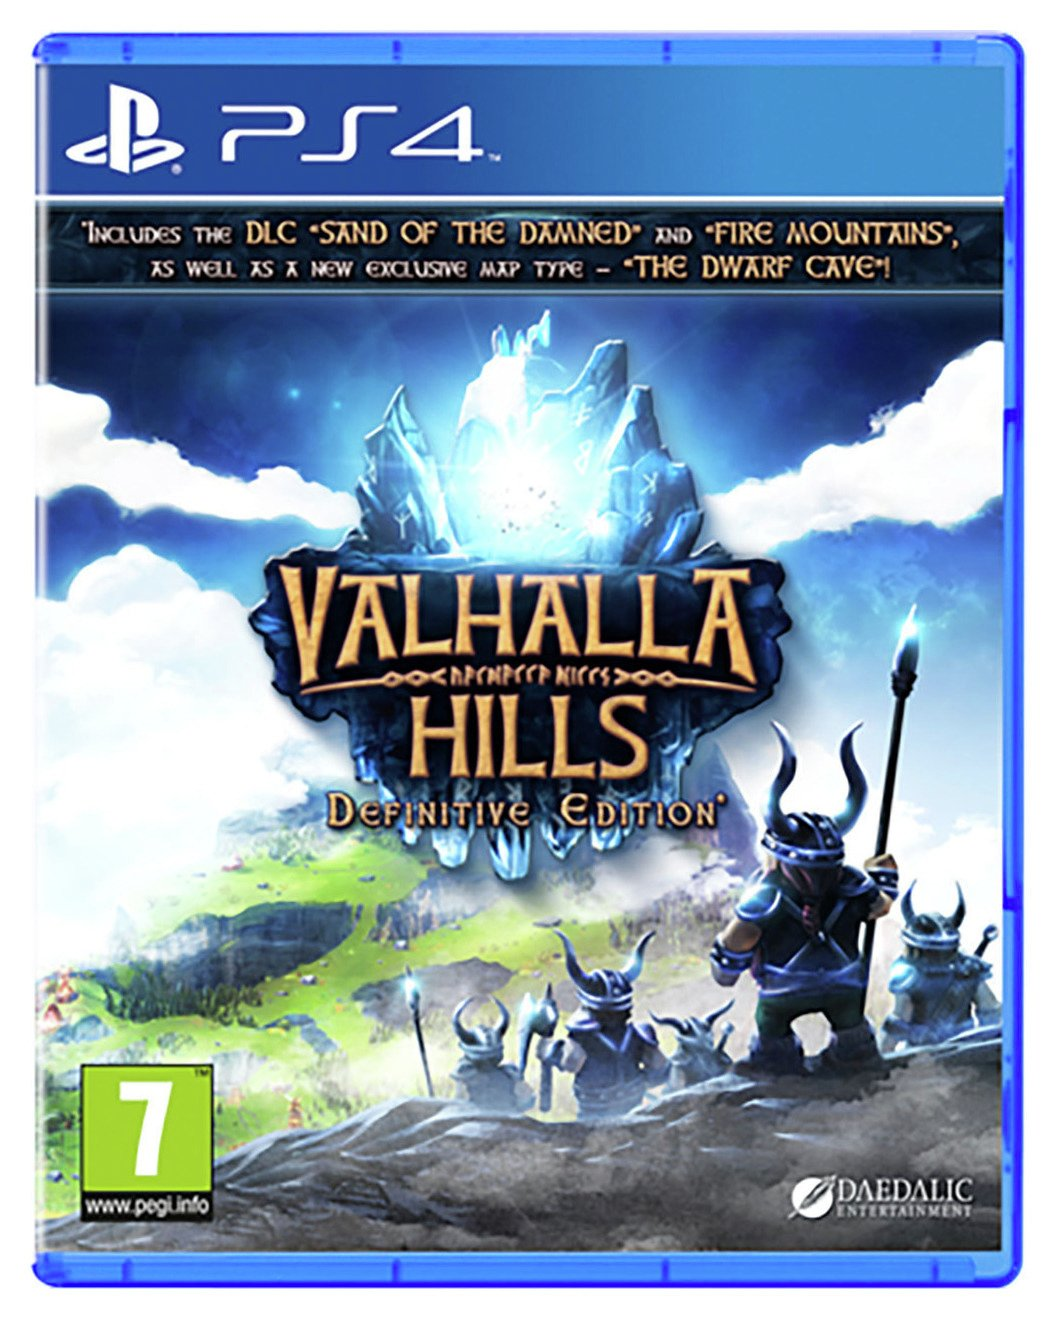 Valhalla Hills Definitive Edition PS4 Game